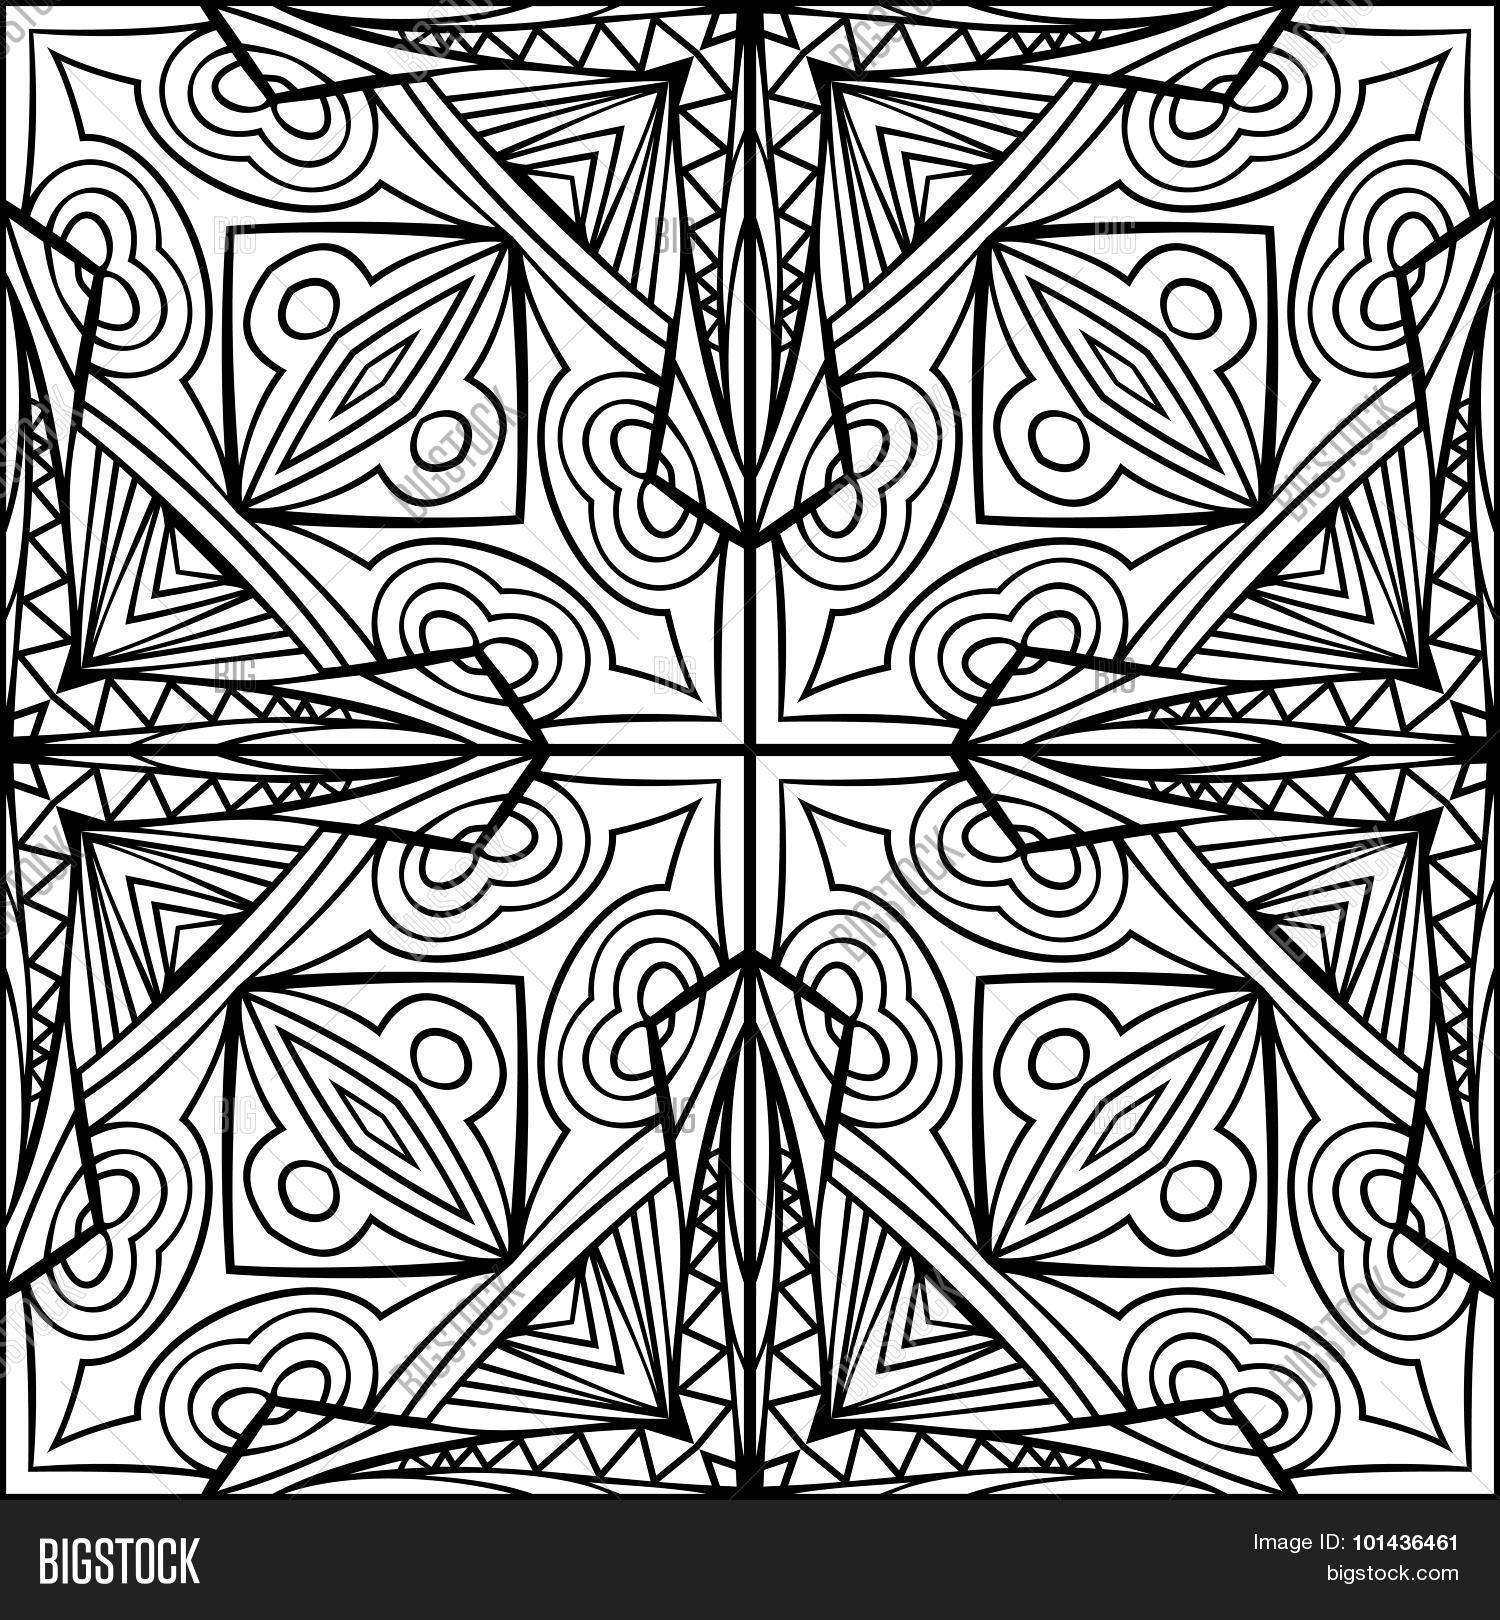 Celtic Coloring Pages - Best Coloring Pages For Kids | 1620x1500